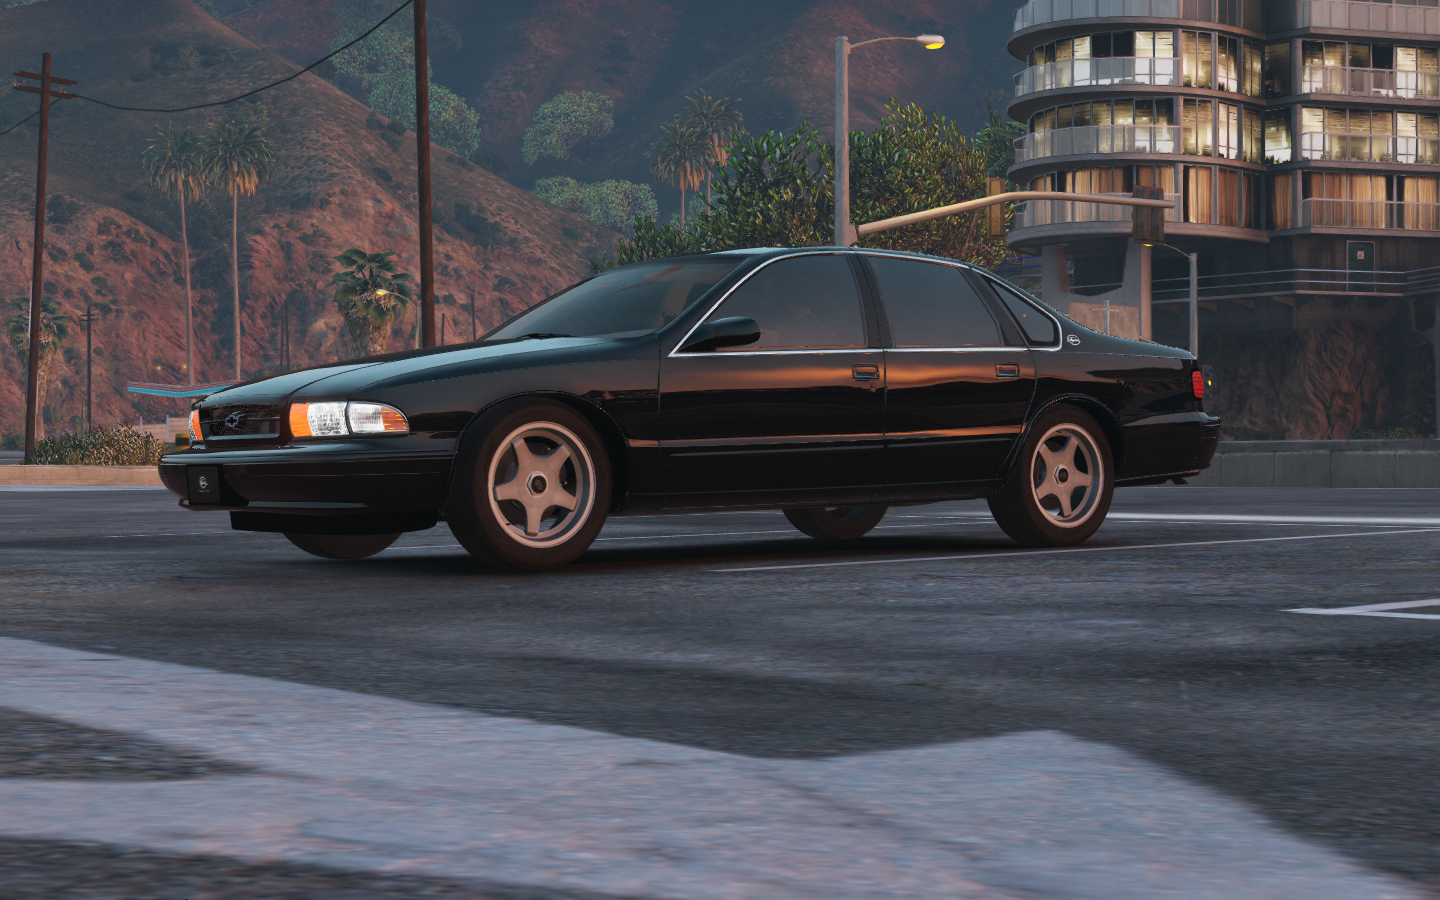 Impala 96 chevy impala : Chevrolet Impala SS '96 [Add-On / Replace | Wipers] - GTA5-Mods.com